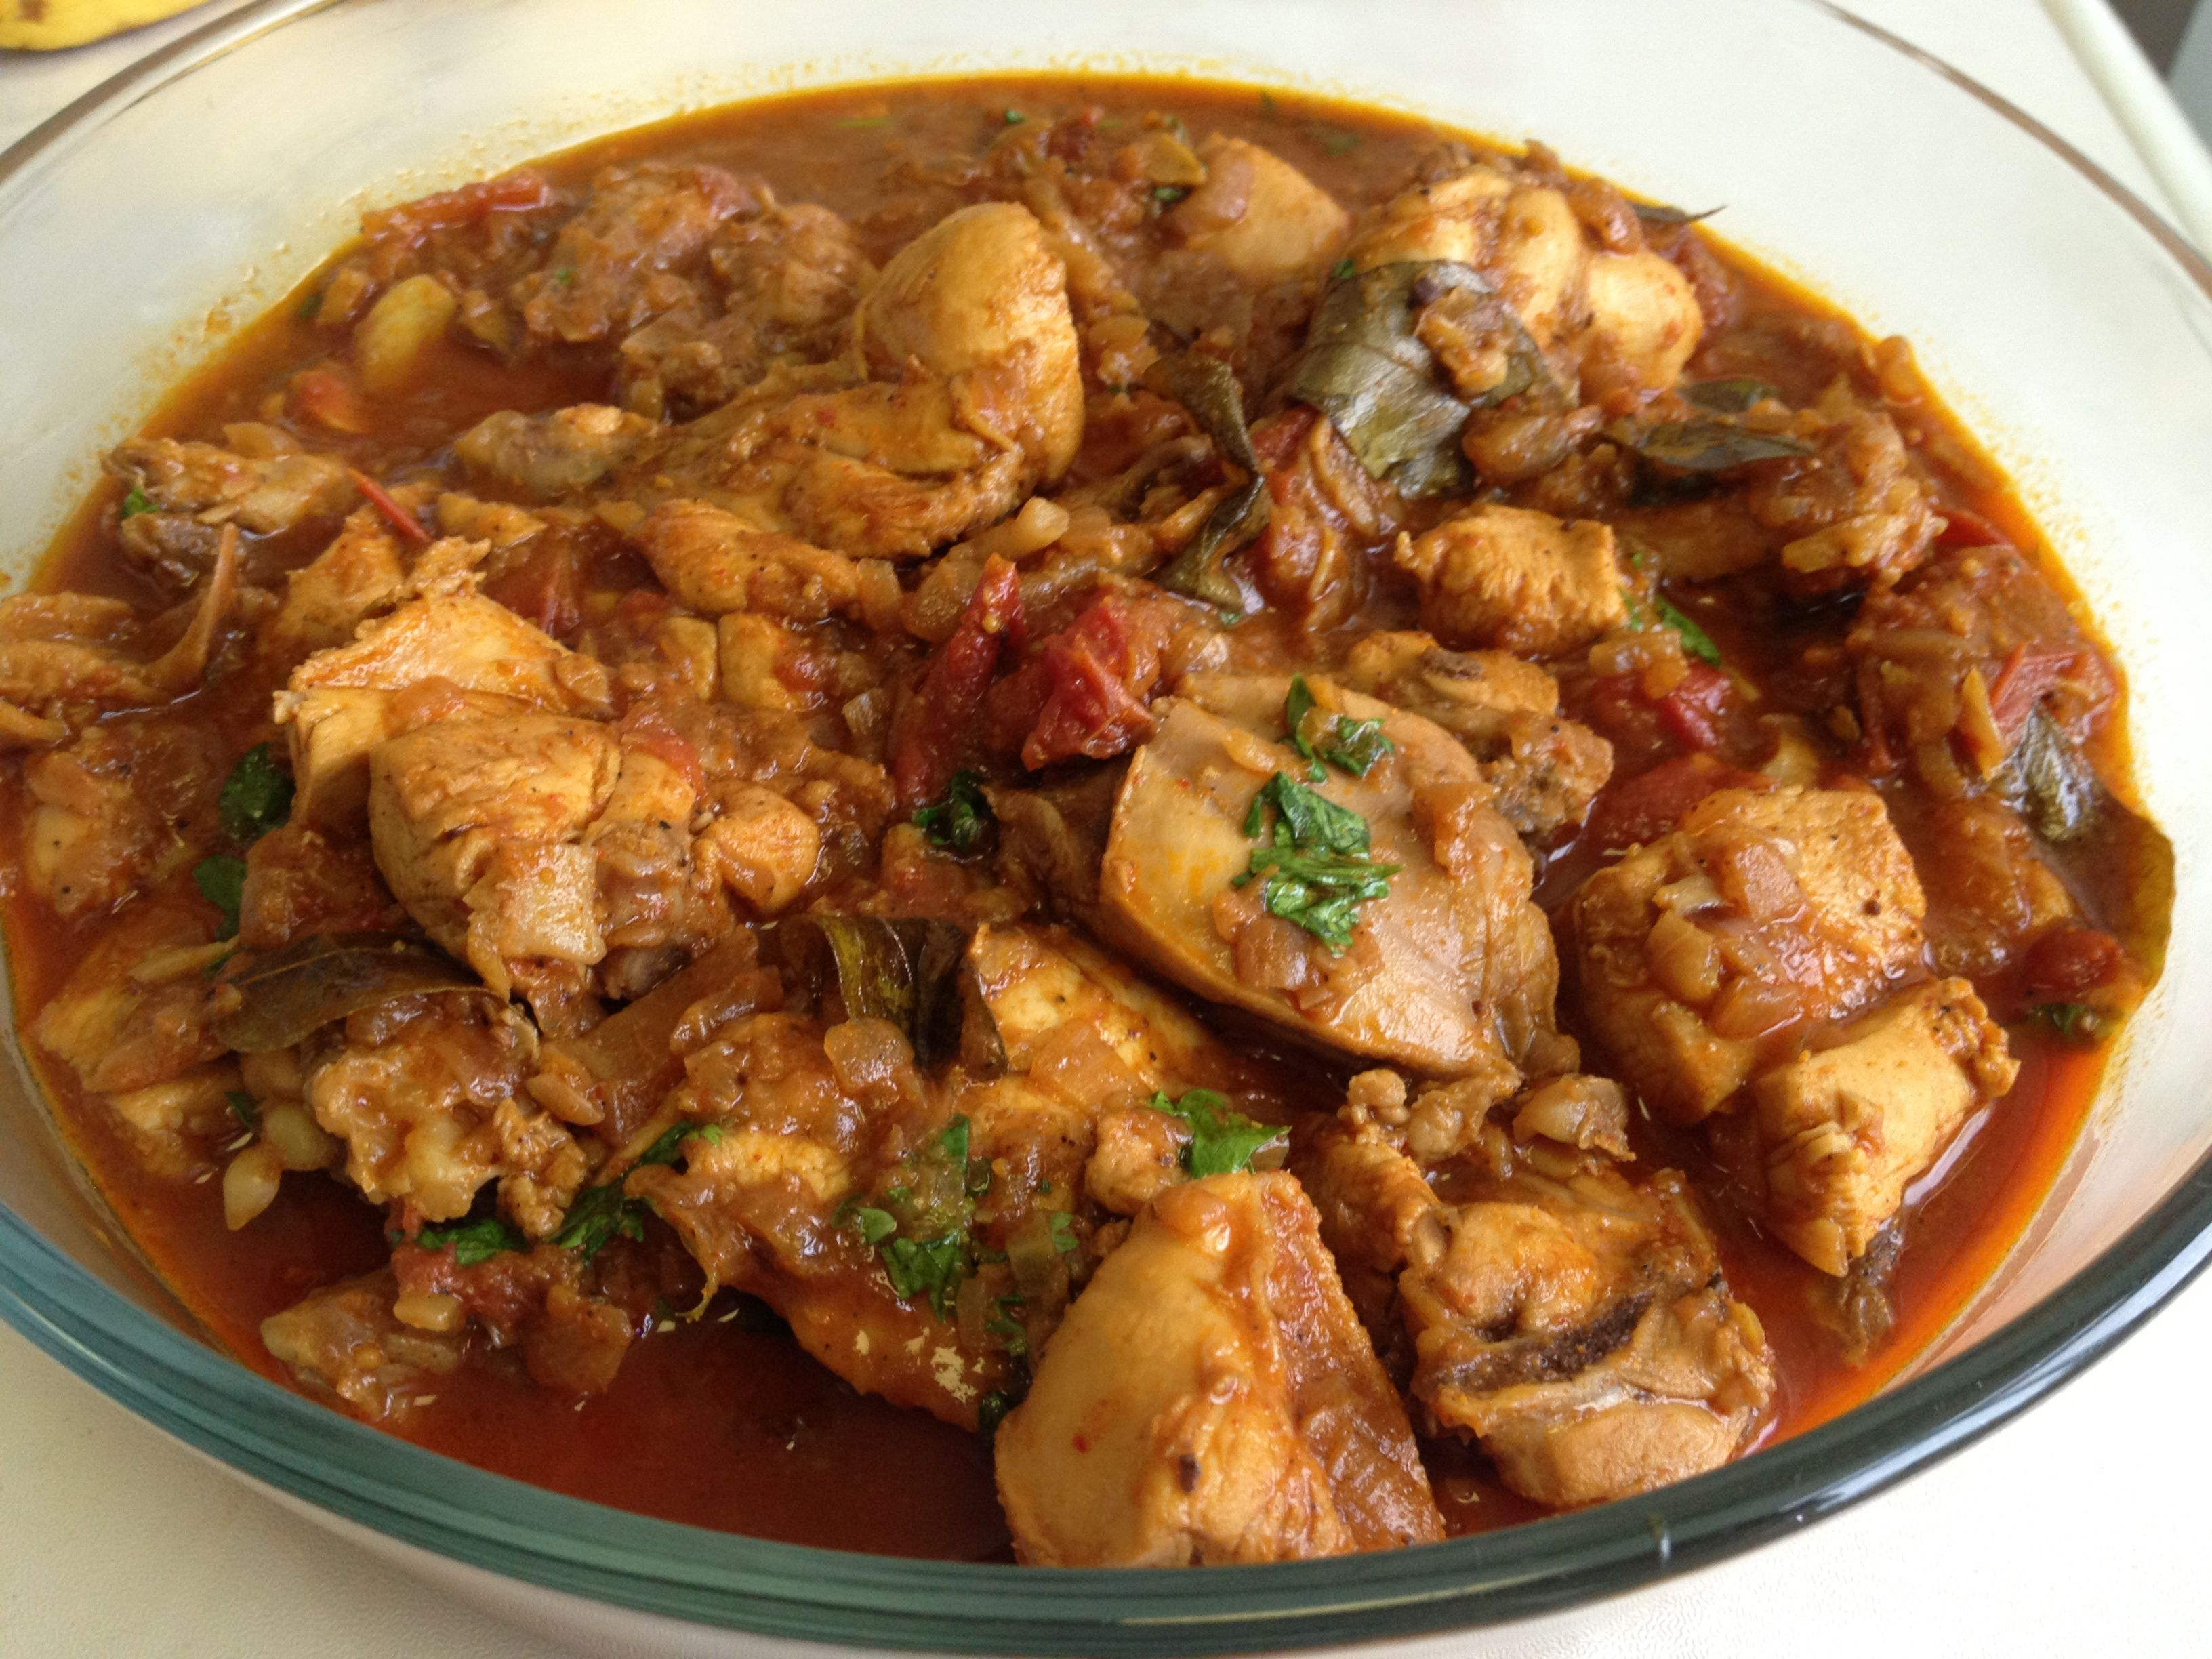 How to make indian chicken masala recipe chicken needs method how to make indian chicken masala recipe chicken masala as per name its full of masala recipe as it needs many masala ingredients to be cooked forumfinder